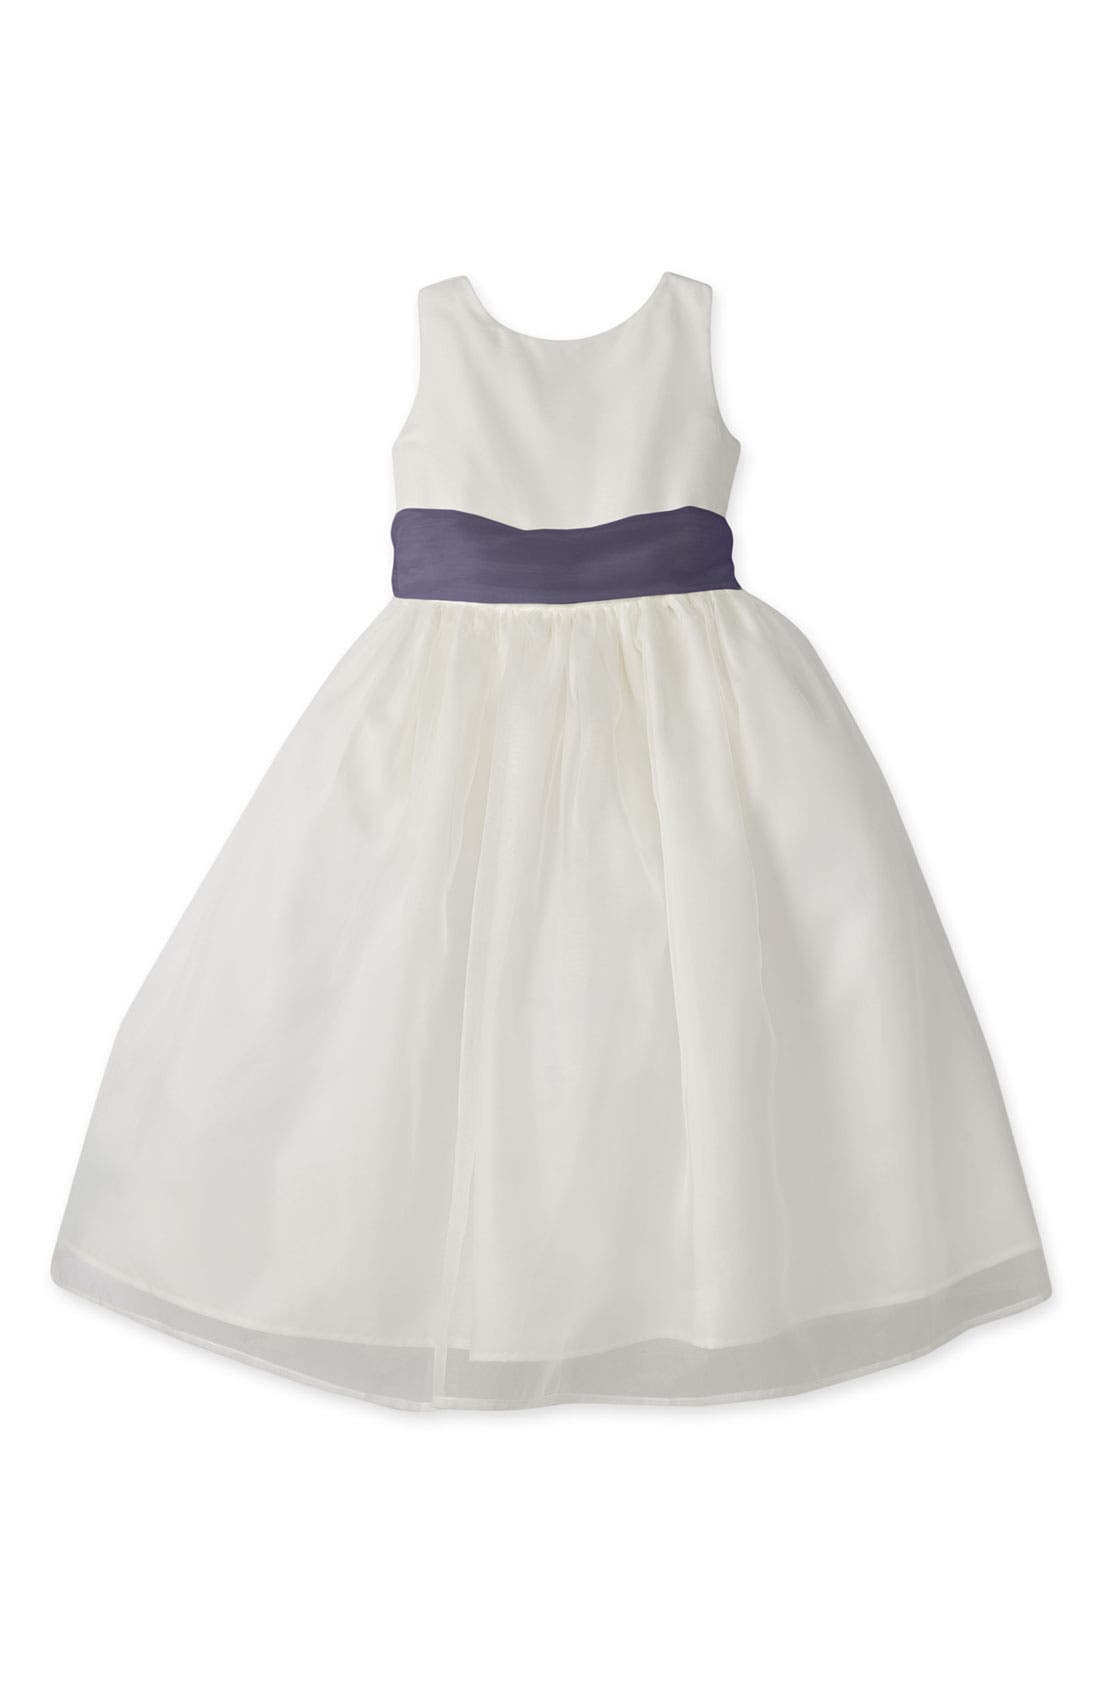 276b20142c9 Baby Girls  Clothing  Dresses